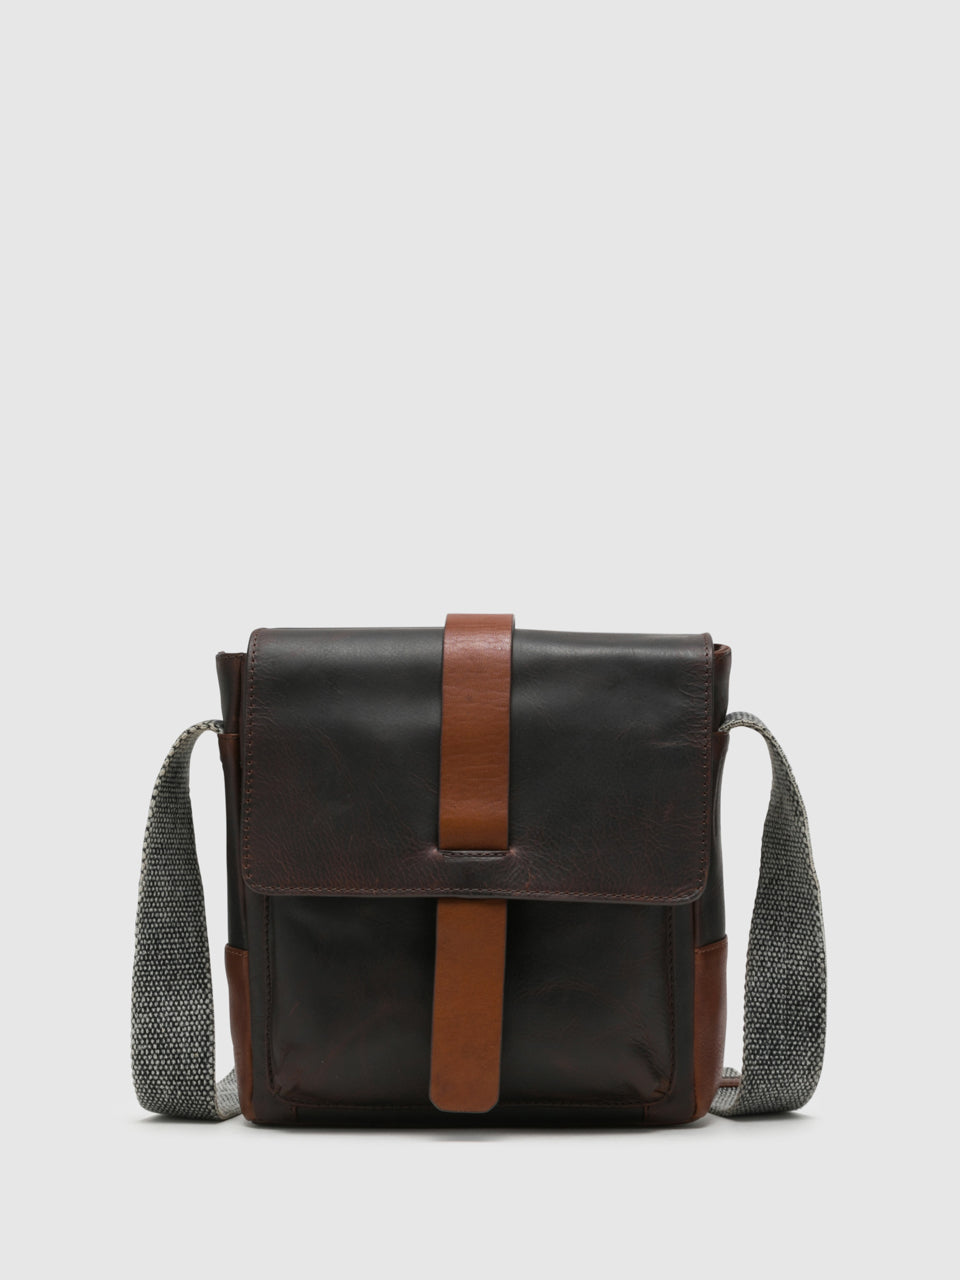 6b74c918d7b Marta Ponti - Men's Leather Bags | Overcube Online Shop